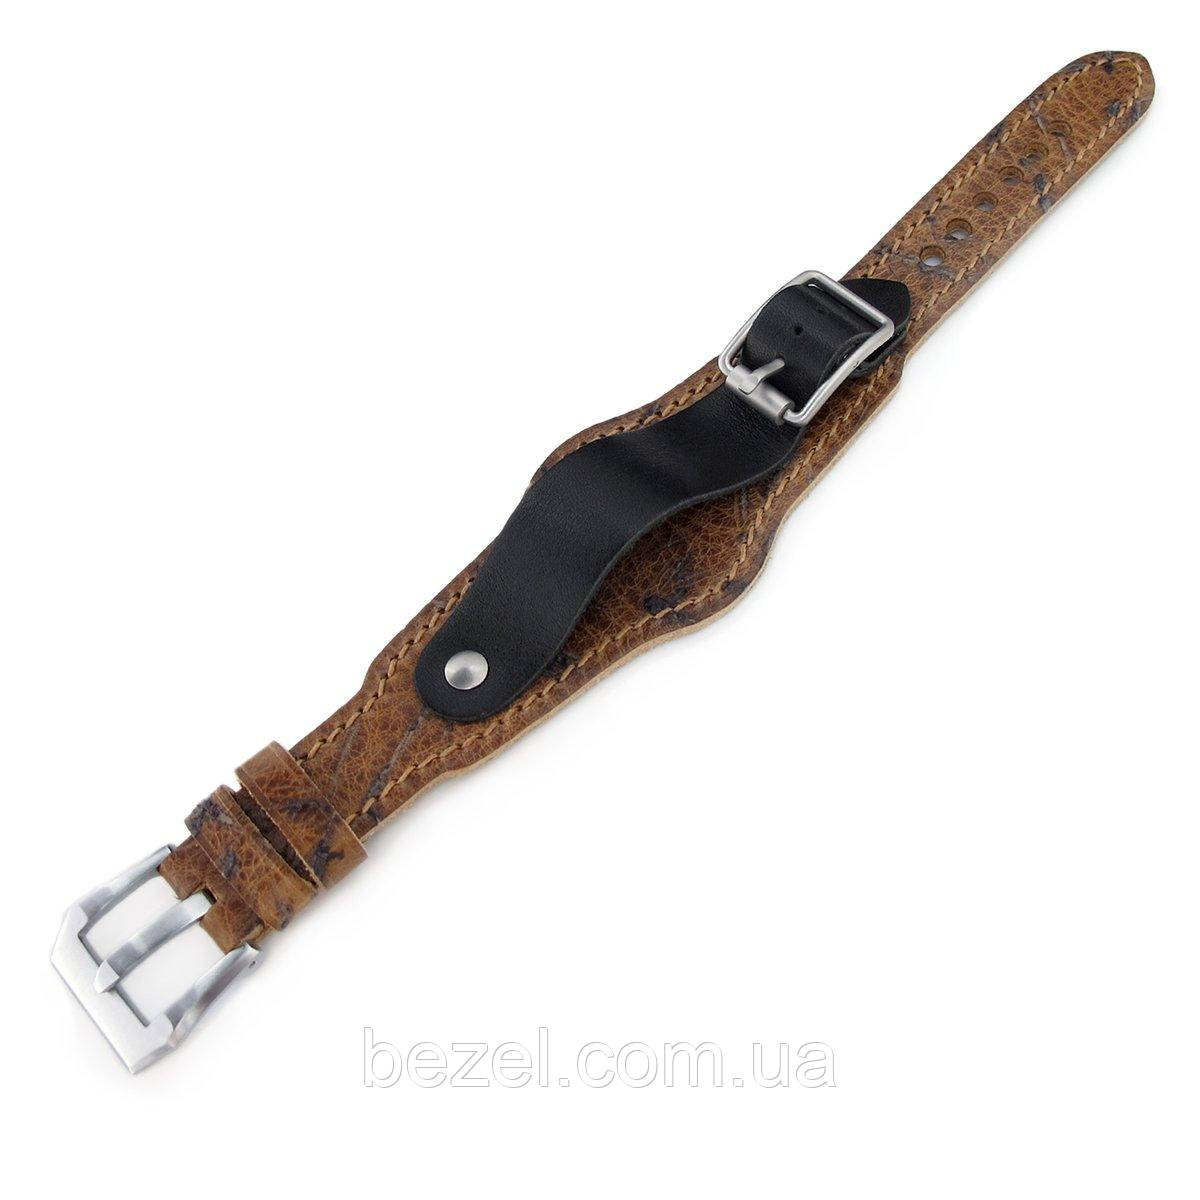 20mm Hezzo Bund Military Style Double-layer Watch Strap, Heavy Scratch Brown Leather of Art